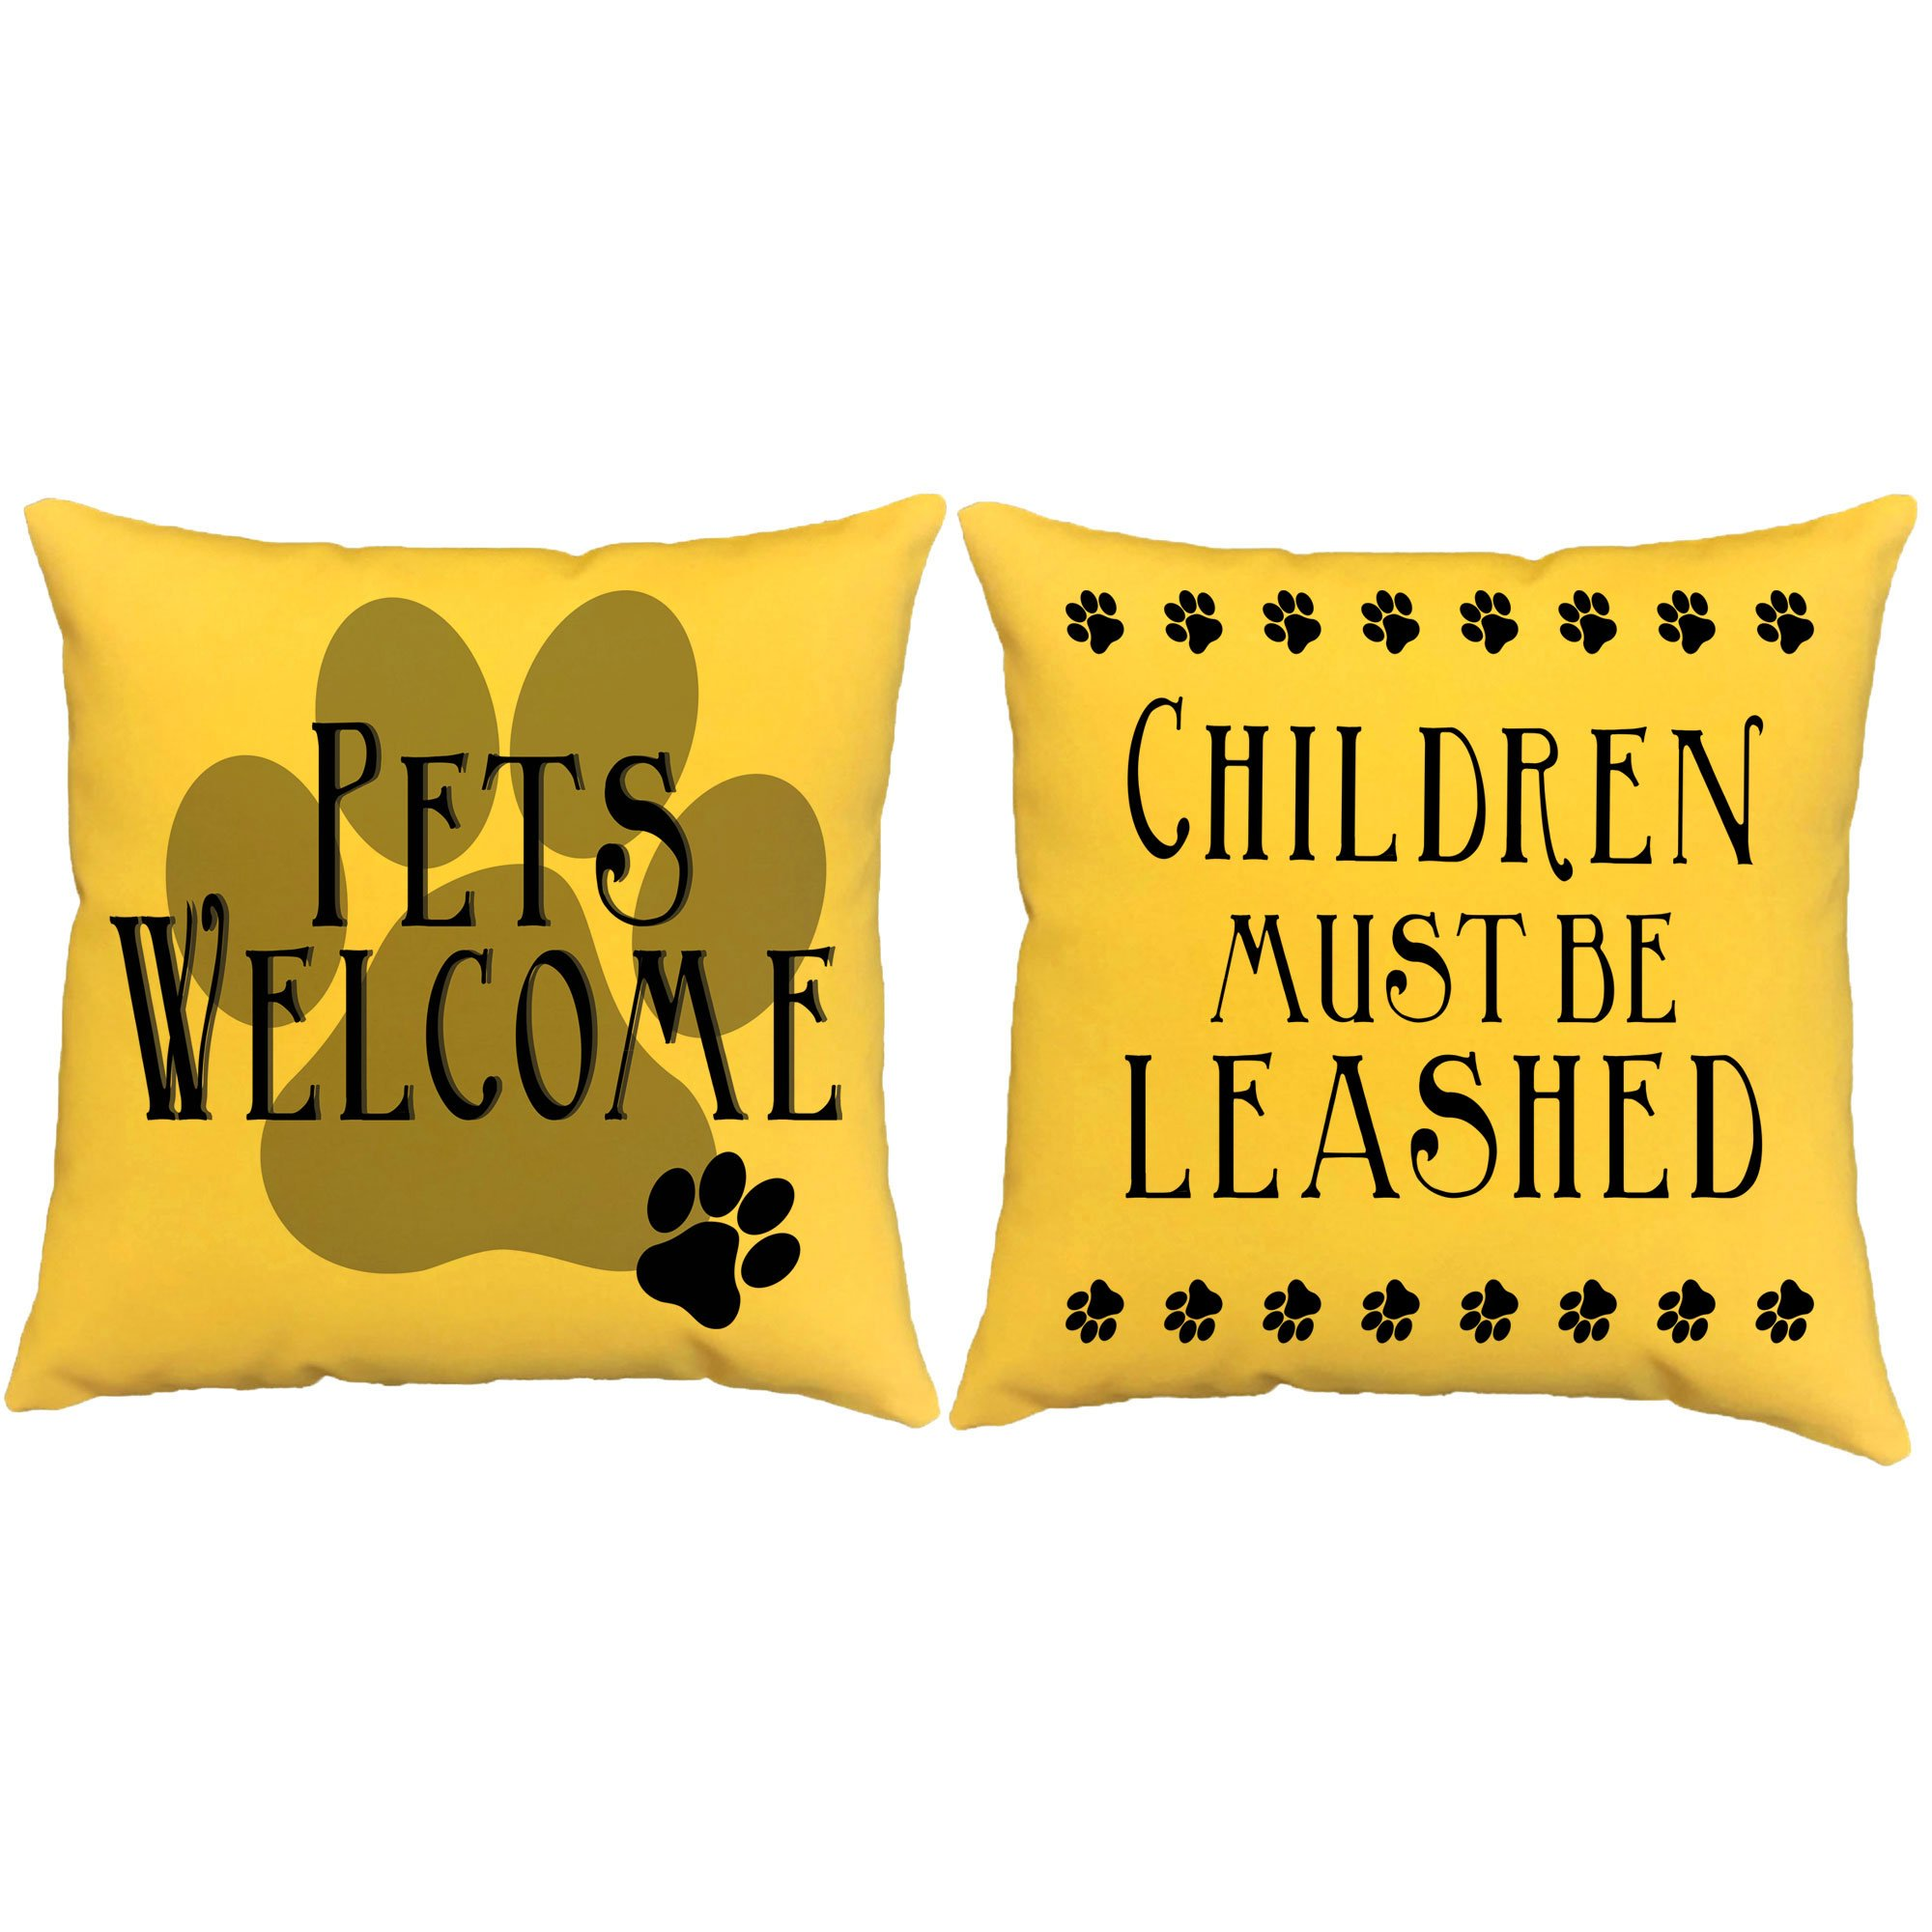 Set of 2 RoomCraft Pets Welcome Children Must Be Leashed Throw Pillows 20x20 Square Yellow Indoor-Outdoor Cushions